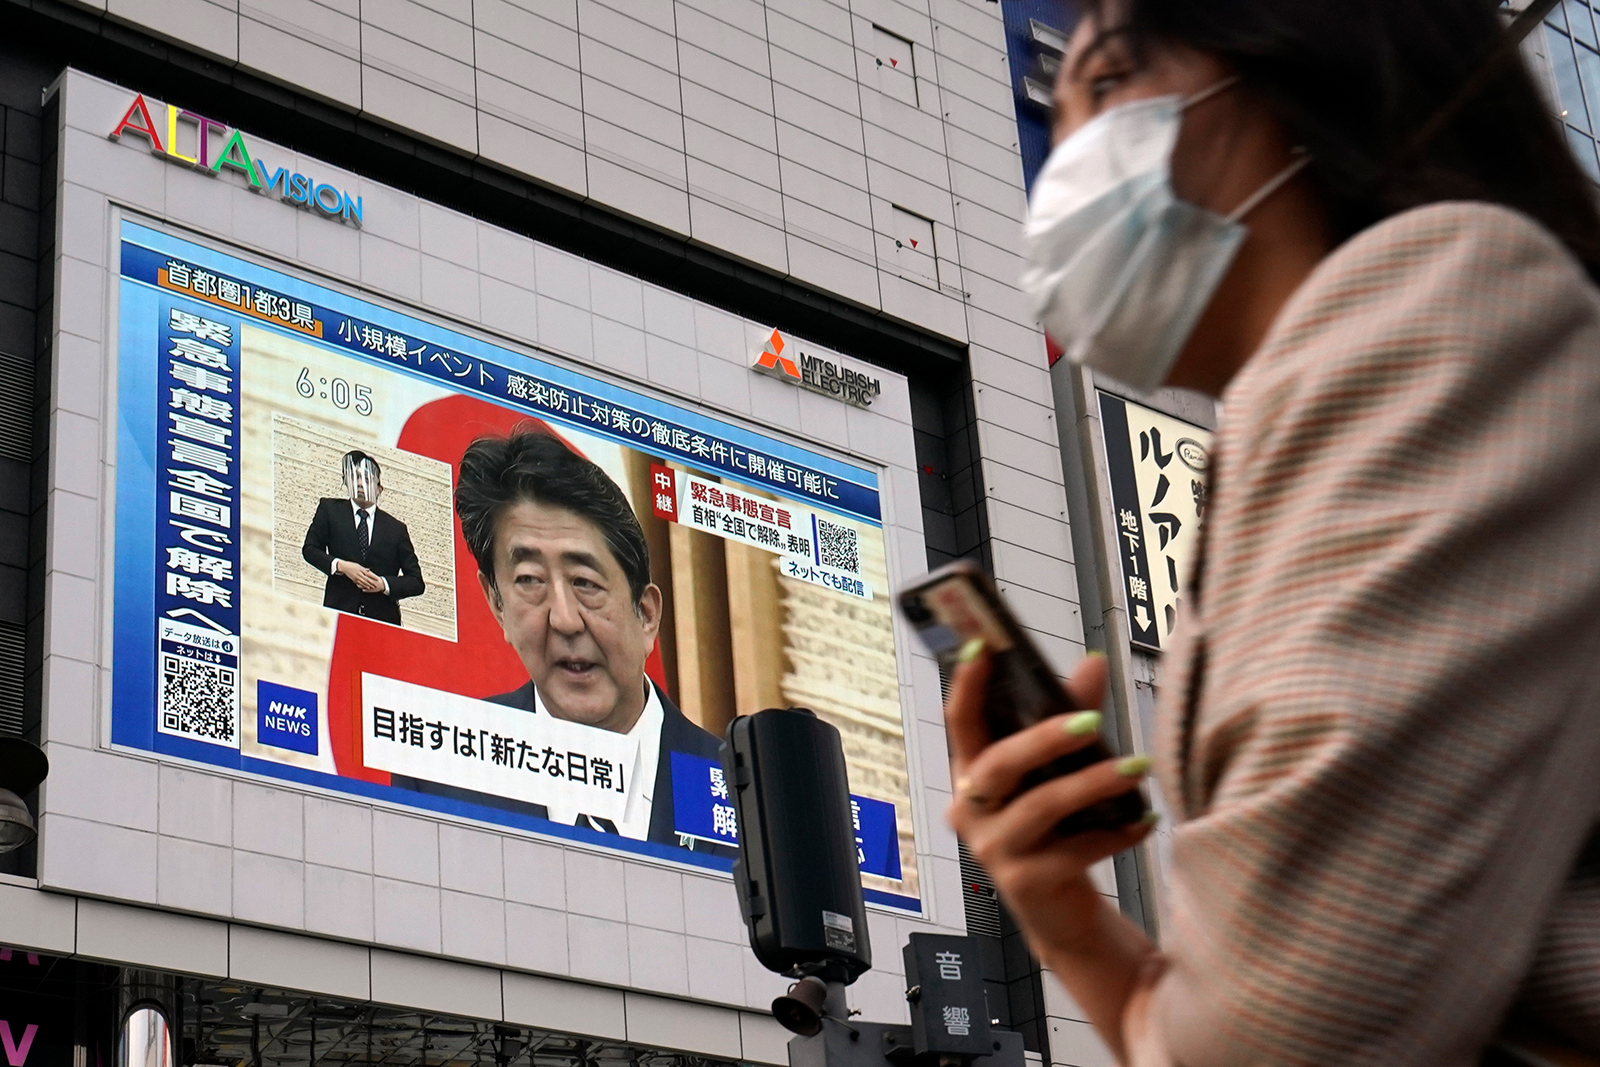 A public screen shows Japanese Prime Minister Shinzo Abe speaking at a press conference in Tokyo, on May 25. Abe lifted a coronavirus state of emergency in Tokyo.